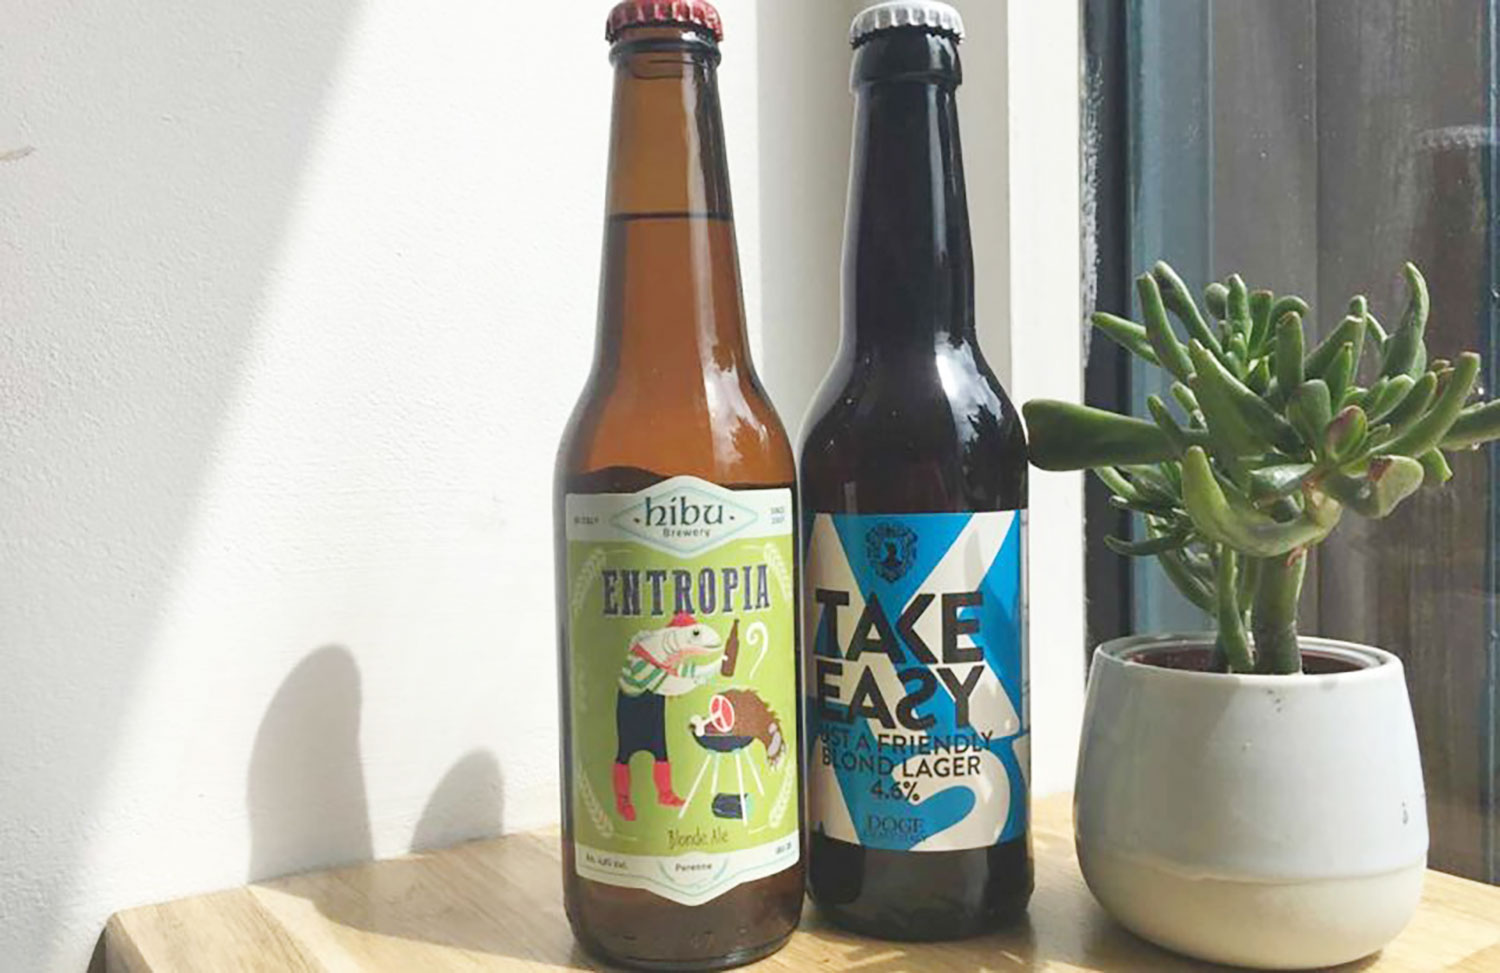 A bottle of Entropia blonde Ale and a bottle of Take Easy Blond lager next to a potted succulent at Symposium on Roman Road, in East London